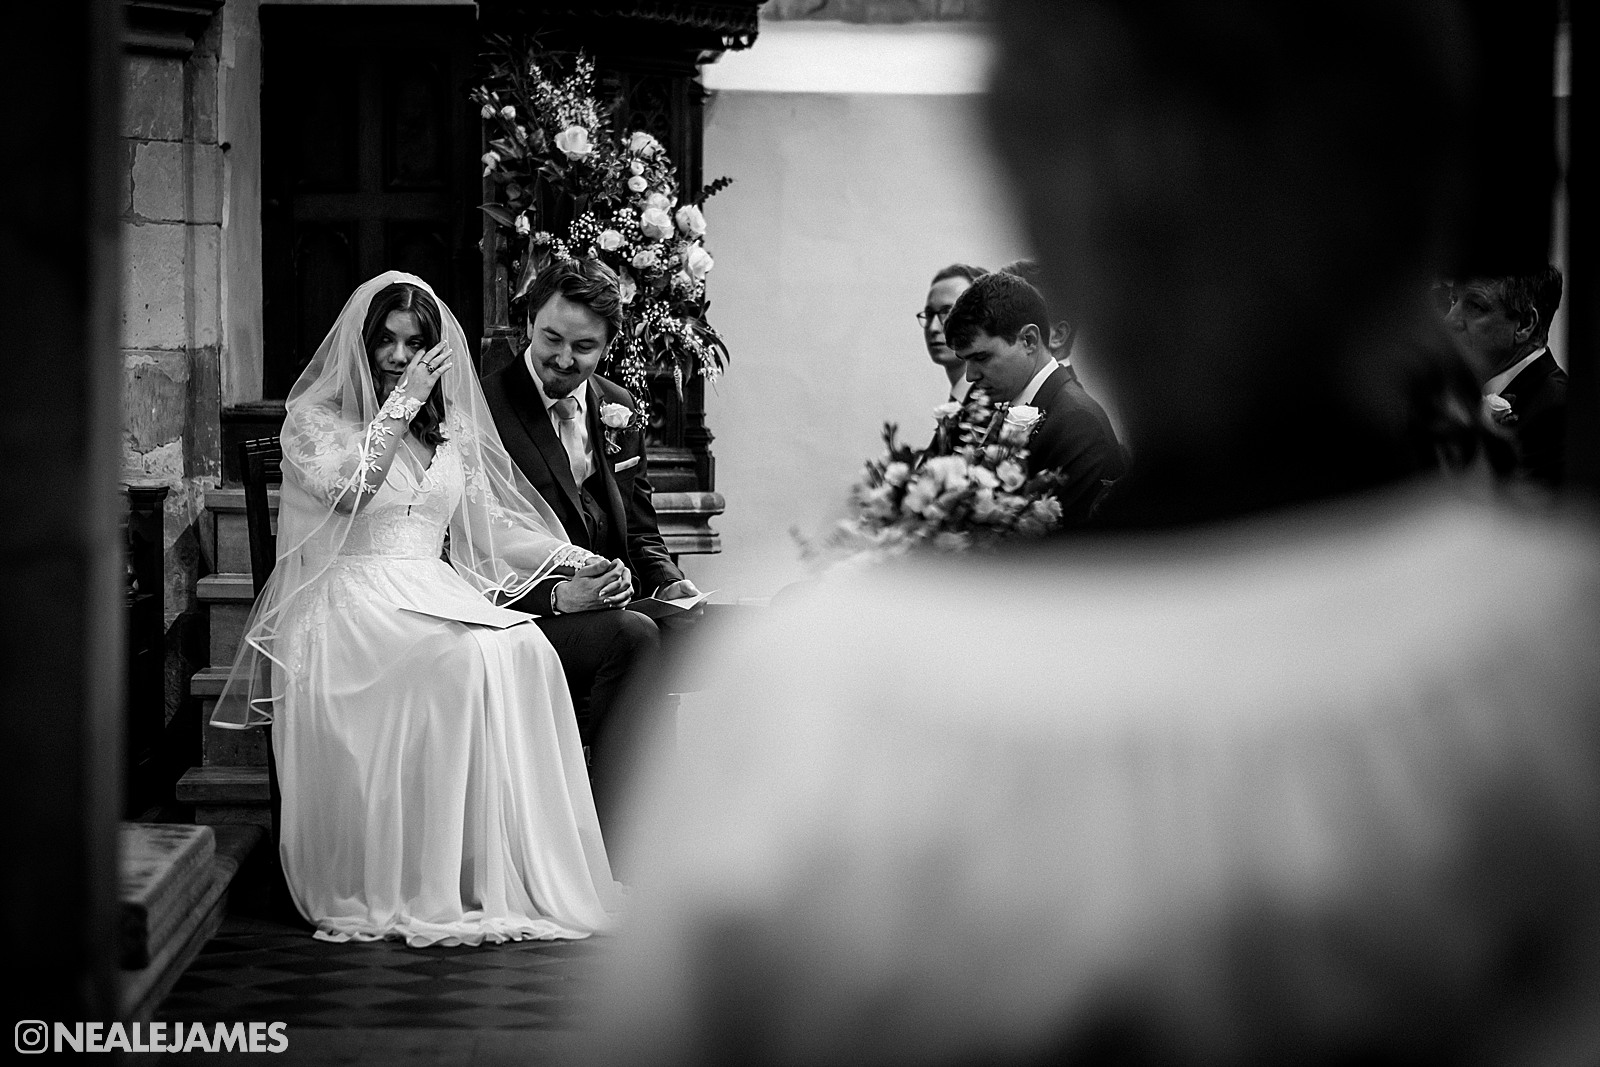 Black and white picture of a bride and groom being emotional during their church wedding